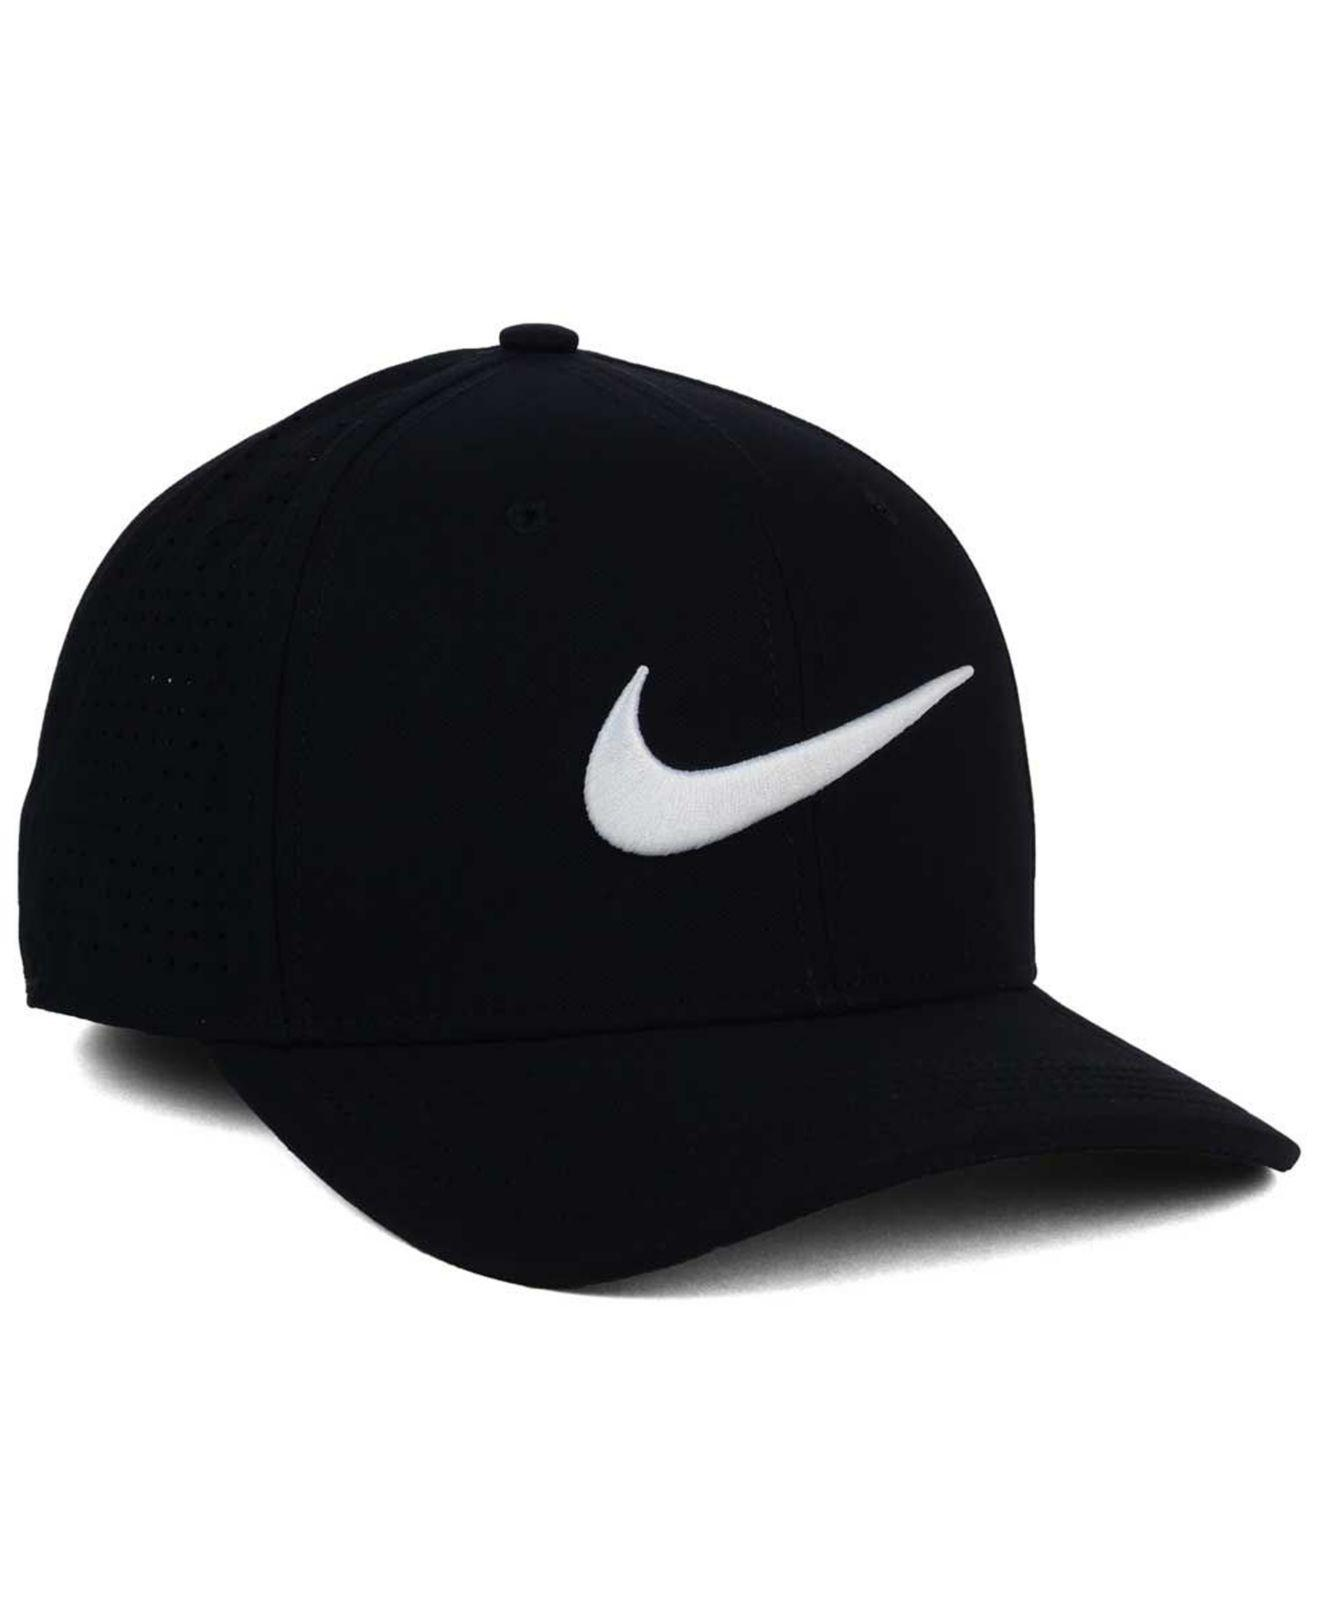 Lyst - Nike Vapor Flex Ii Cap in Black for Men 910e747ff37